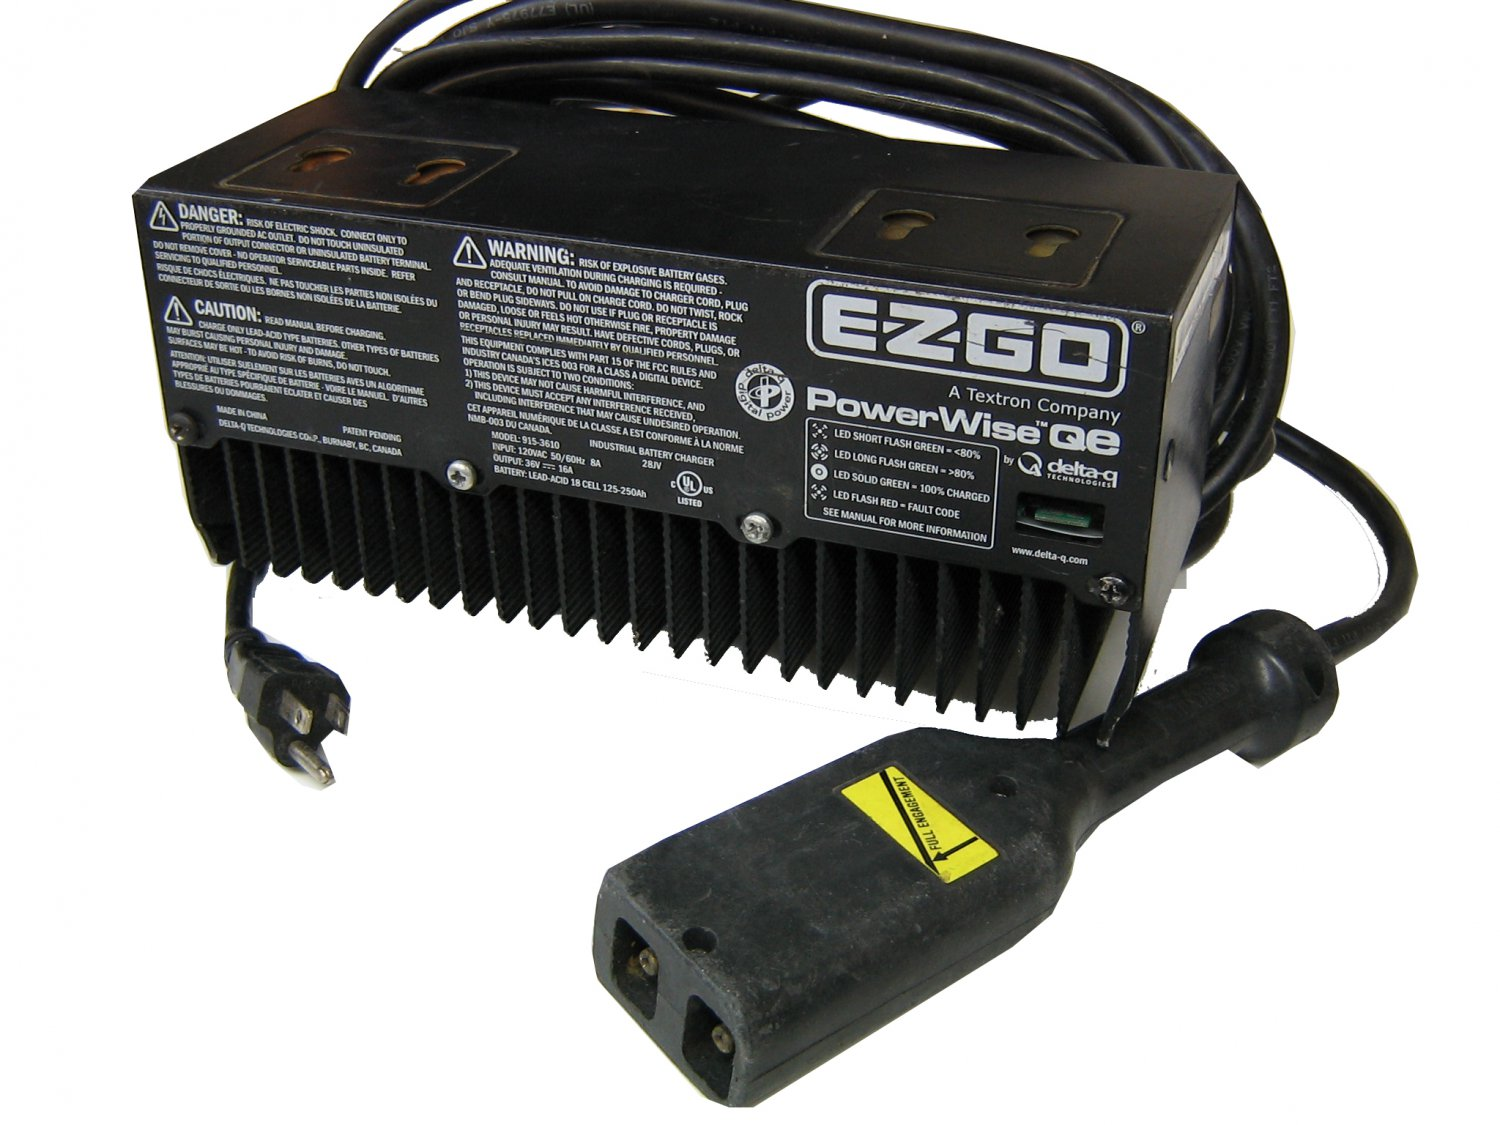 ezgo golf cart 36 volt battery wiring diagram mercedes atego ecu ez-go 915-3610 charger 36v powerwise qe g3610, with one year warranty, g3610